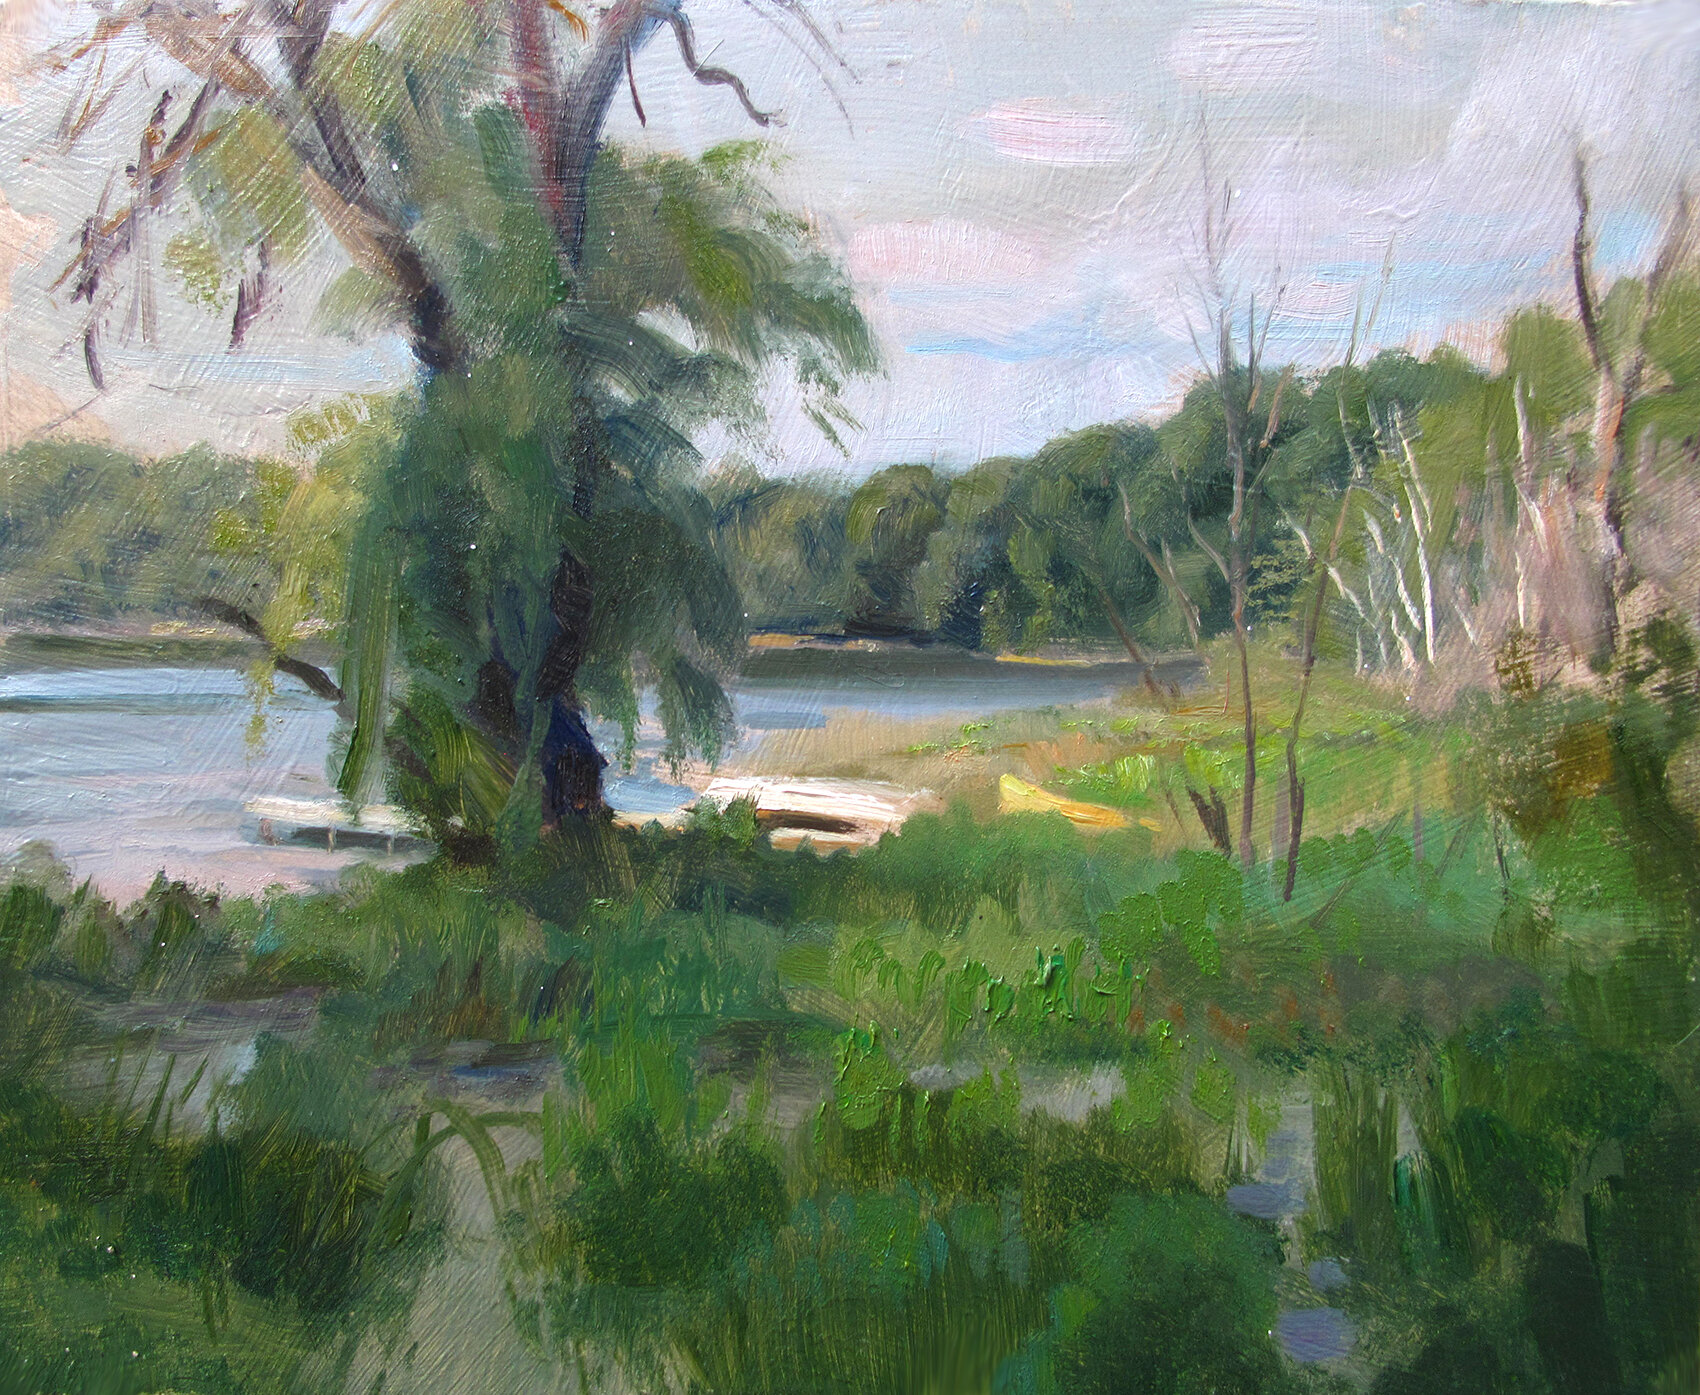 Early Evening Light    8 x 10 oil on panel  Painted on location, Des Moines Lake near Webb Lake, Wisconsin.